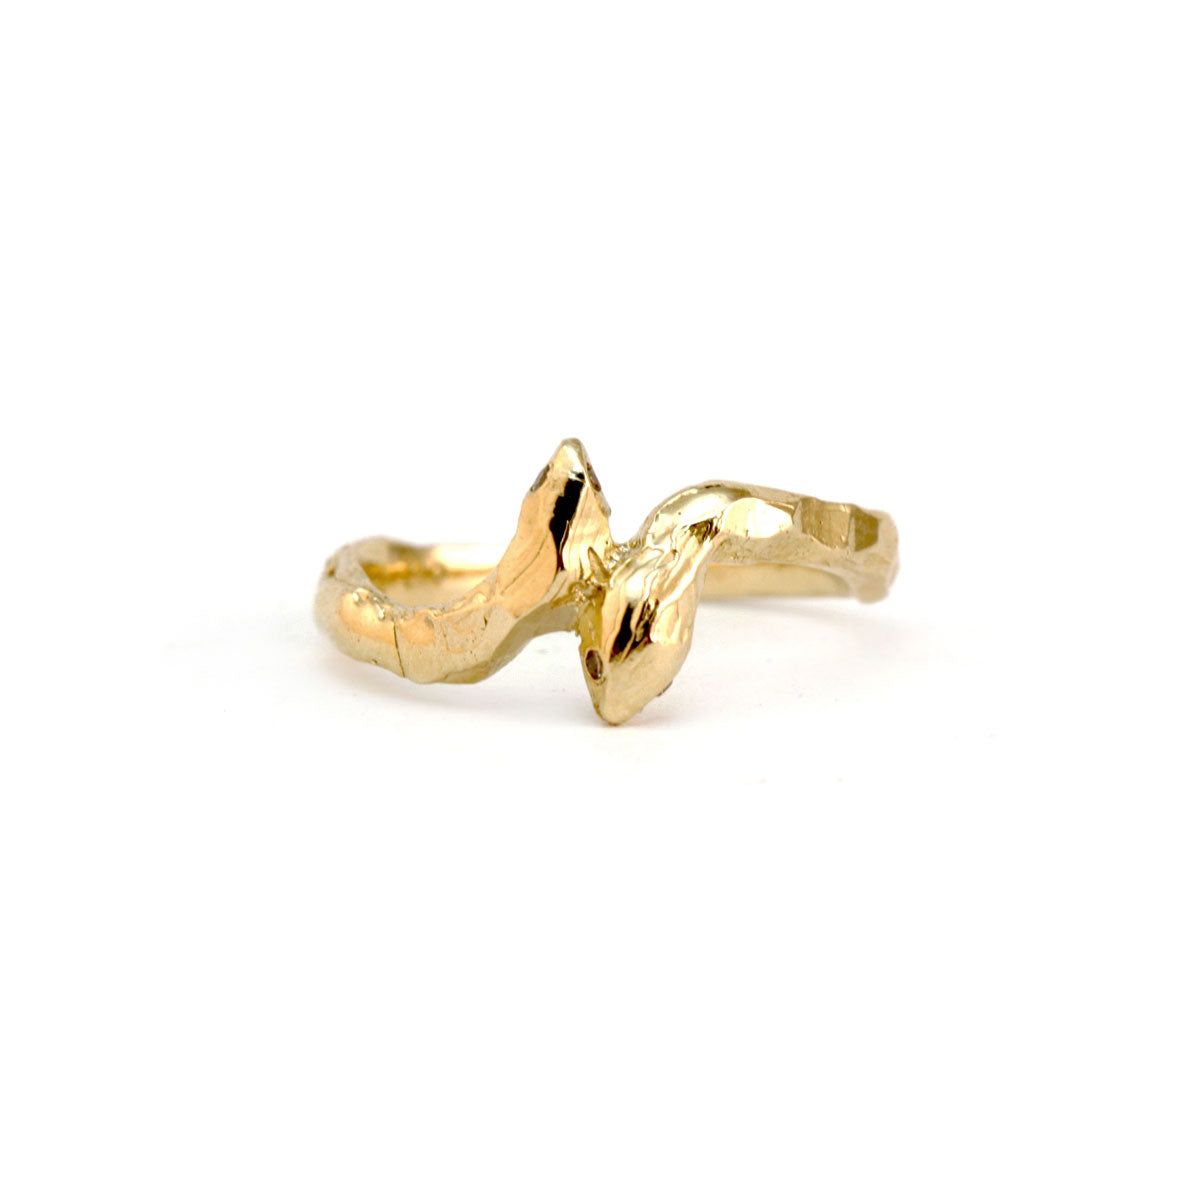 Gold snake ring organic finish cognac diamond eyes